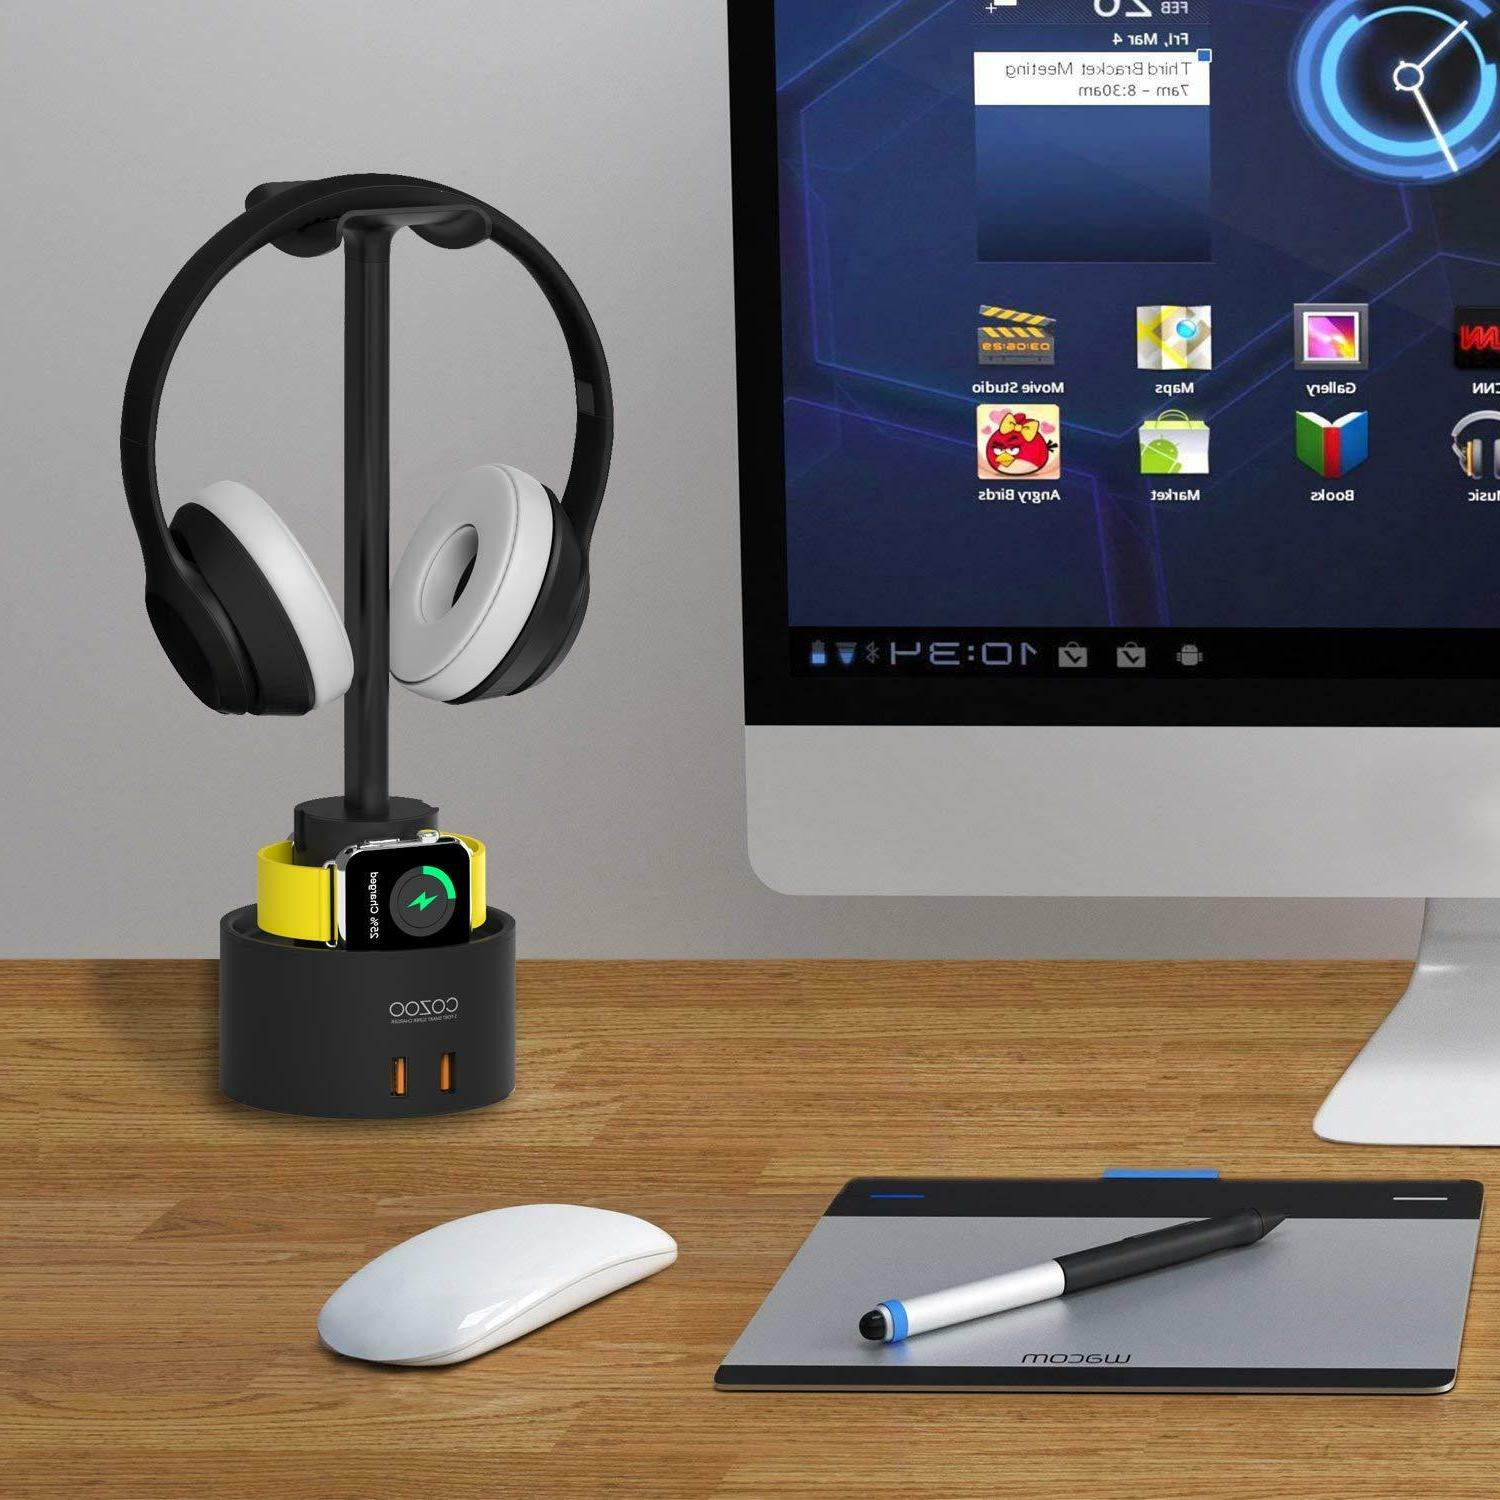 Headphone Stand with USB Charger COZOO Headset